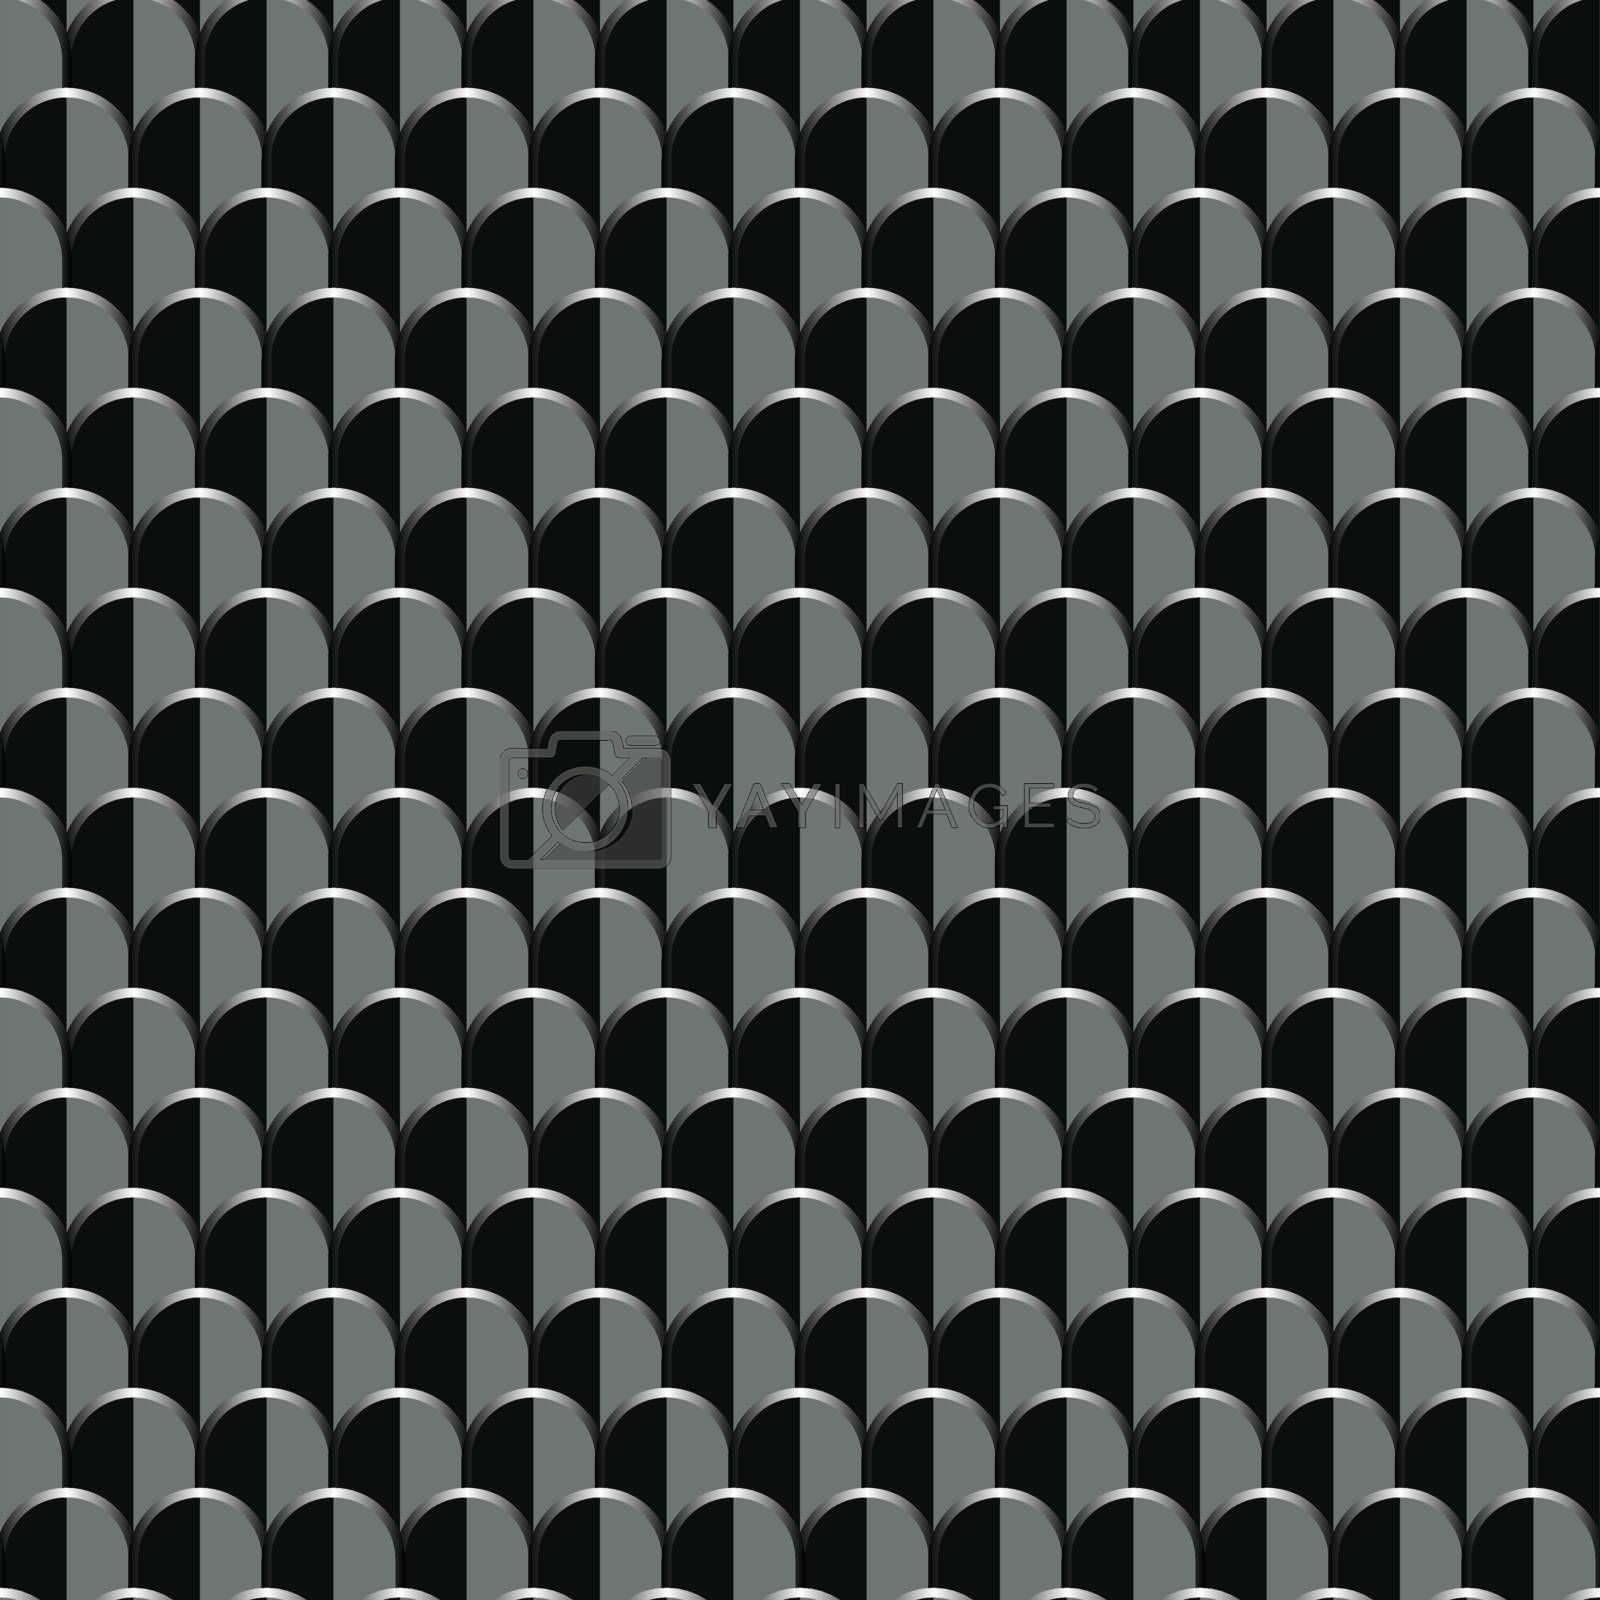 Plate. Seamless pattern. Abstract background.